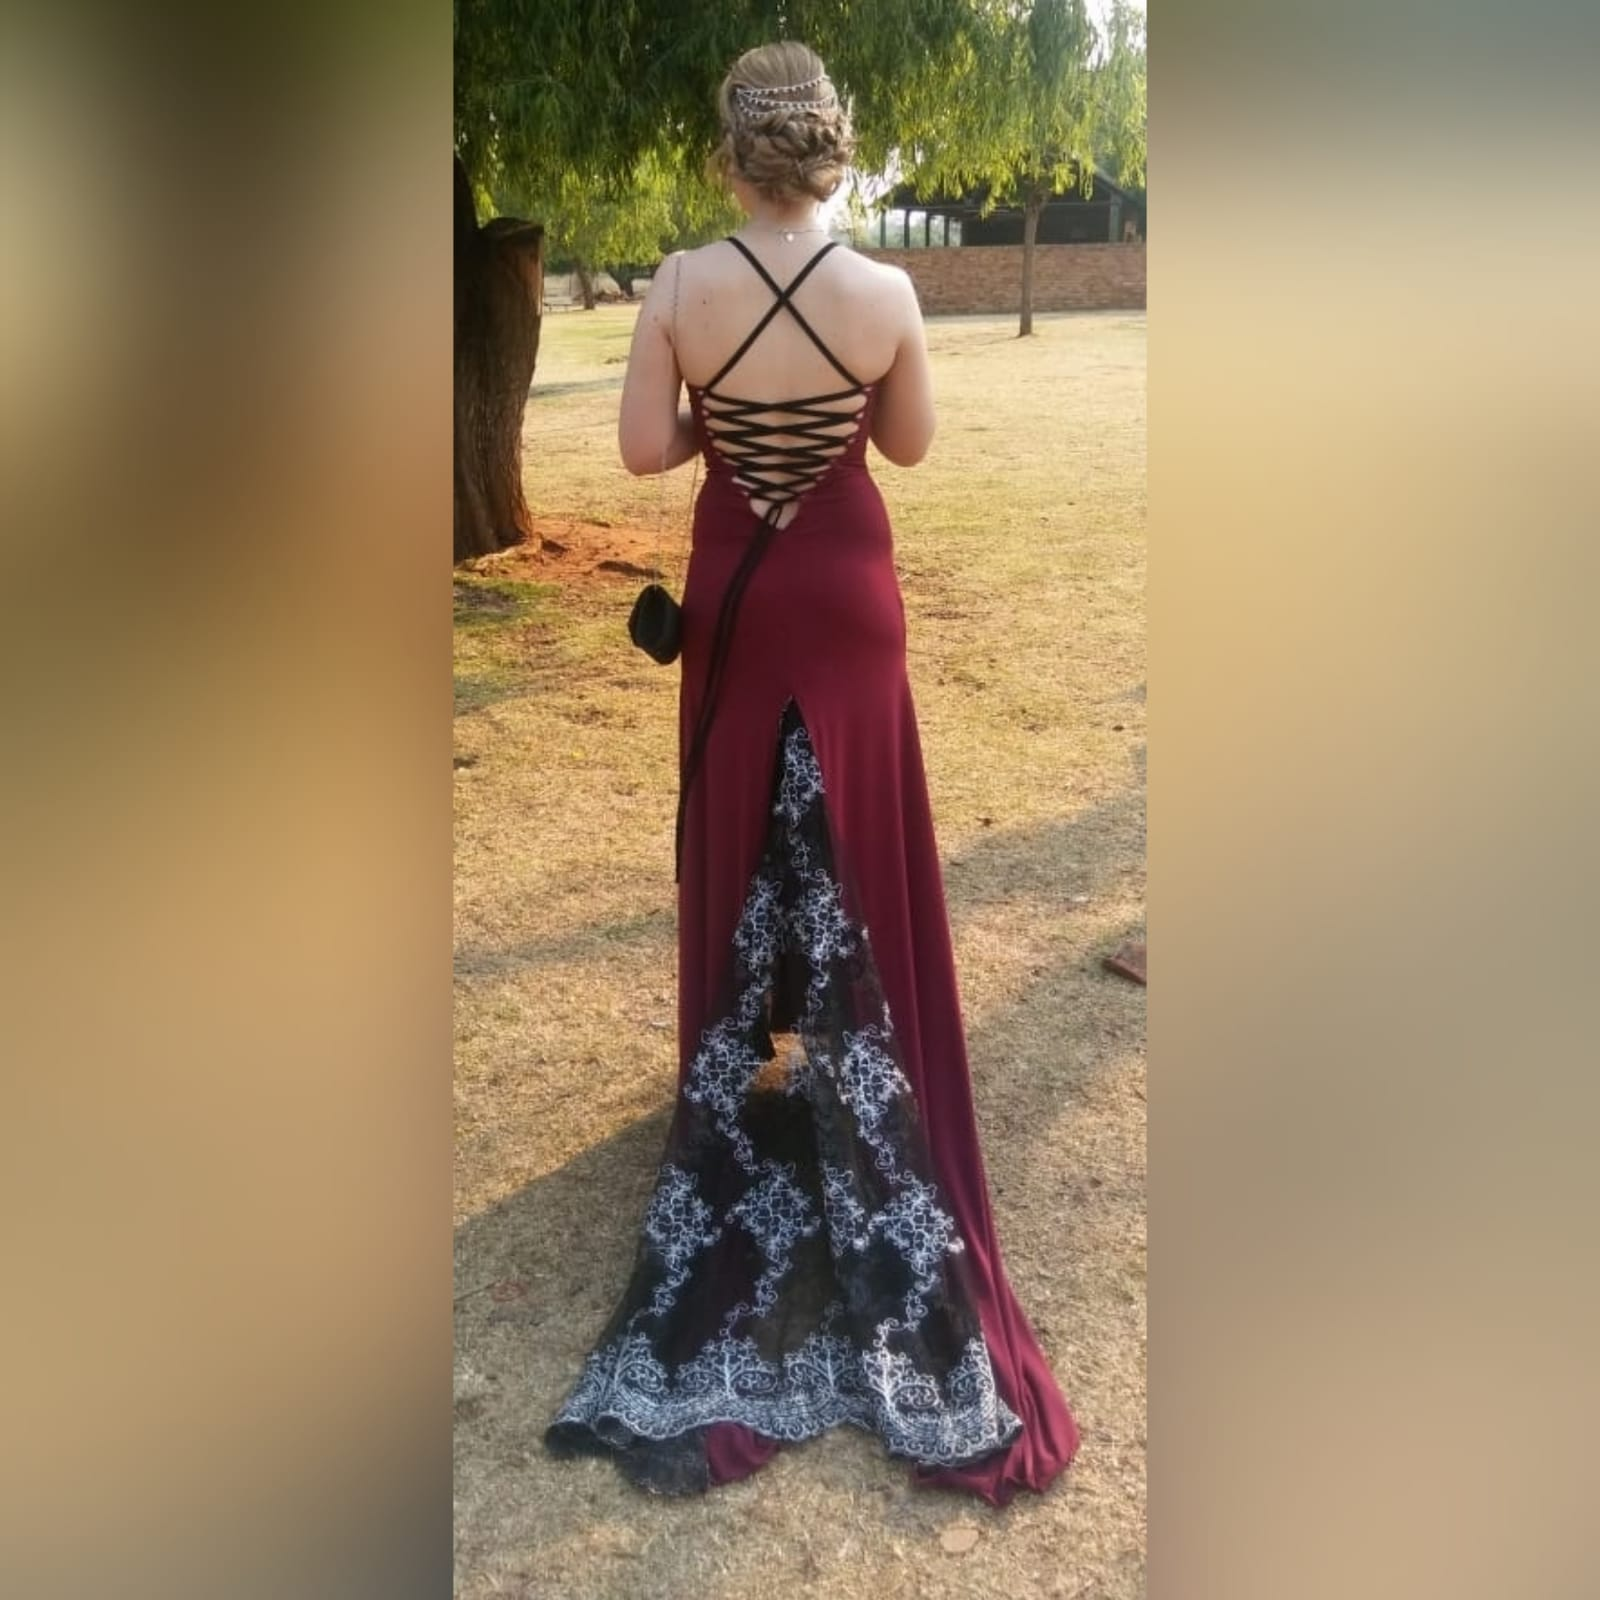 Burgundy, black and silver long sexy matric farewell dress 2 burgundy, black and silver long sexy matric farewell dress, open back with lace up detail, sheer lace train, with a slit and a v neckline.